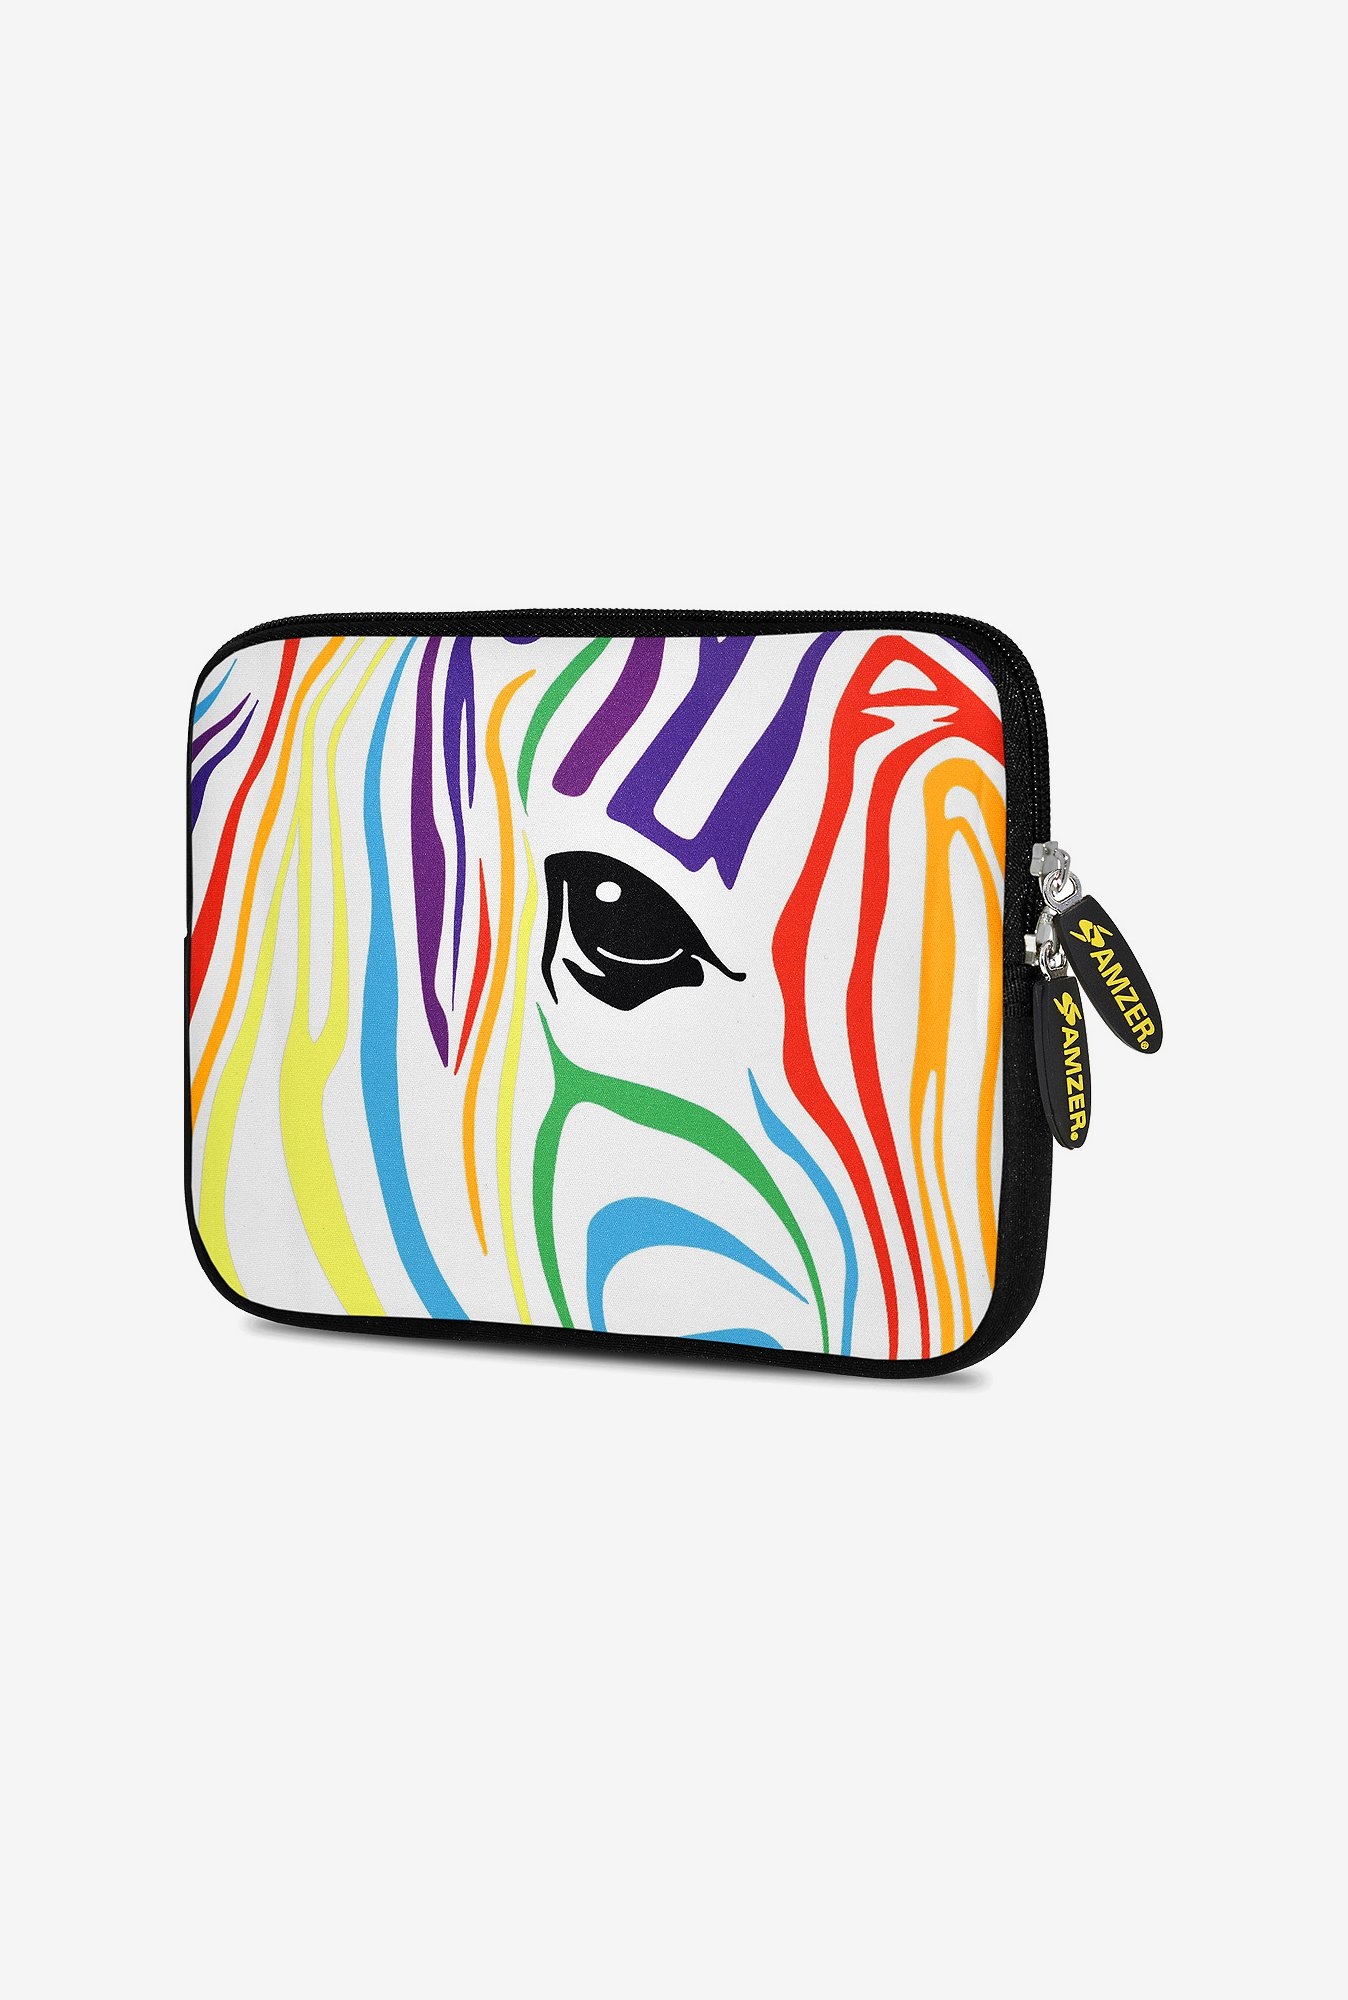 Amzer 10.5 Inch Neoprene Sleeve - Zebra Colour Stripes